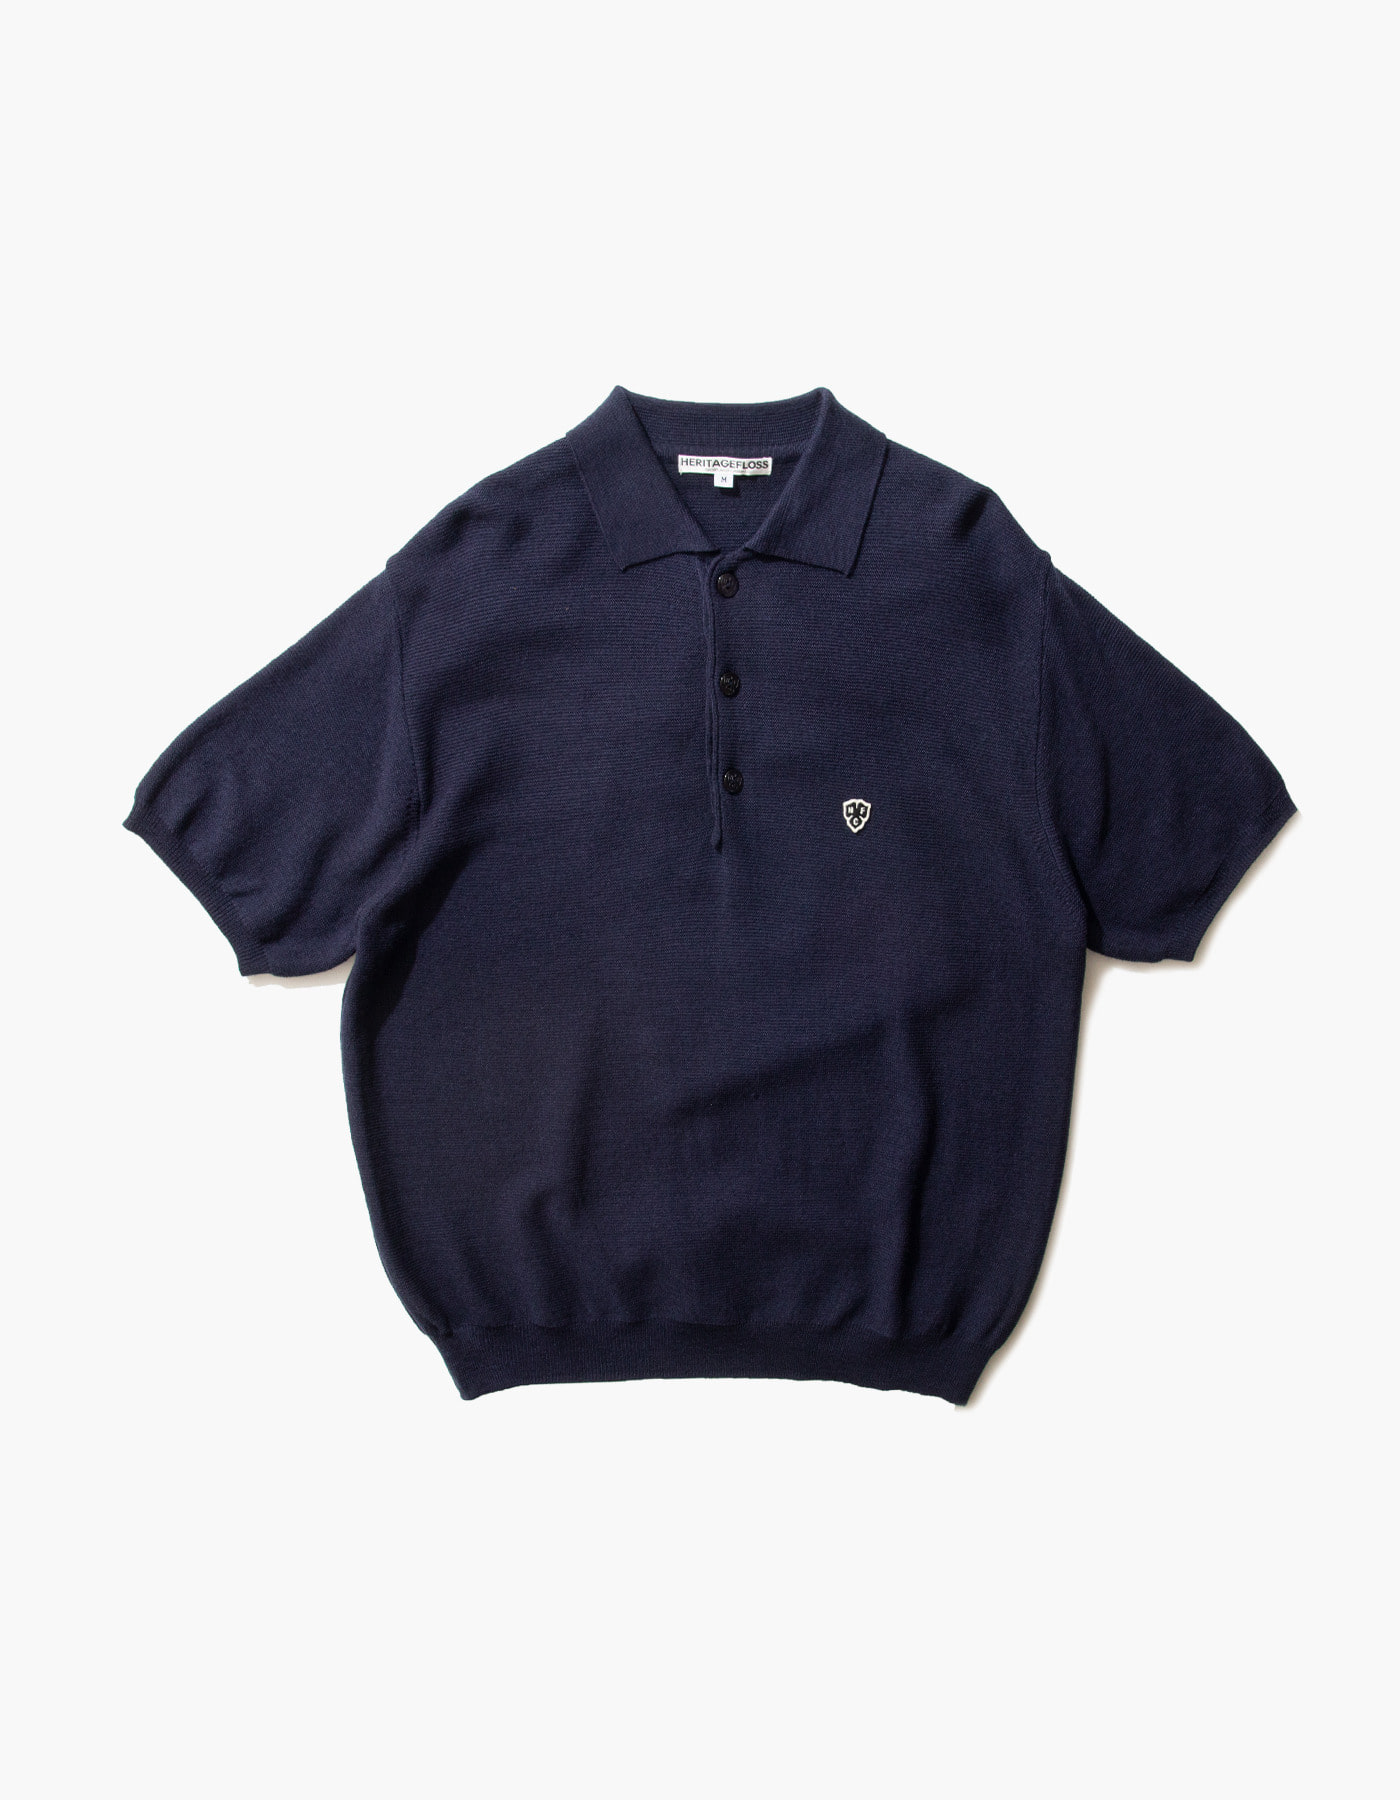 HFC CLOVER POLO SHIRTS / NAVY